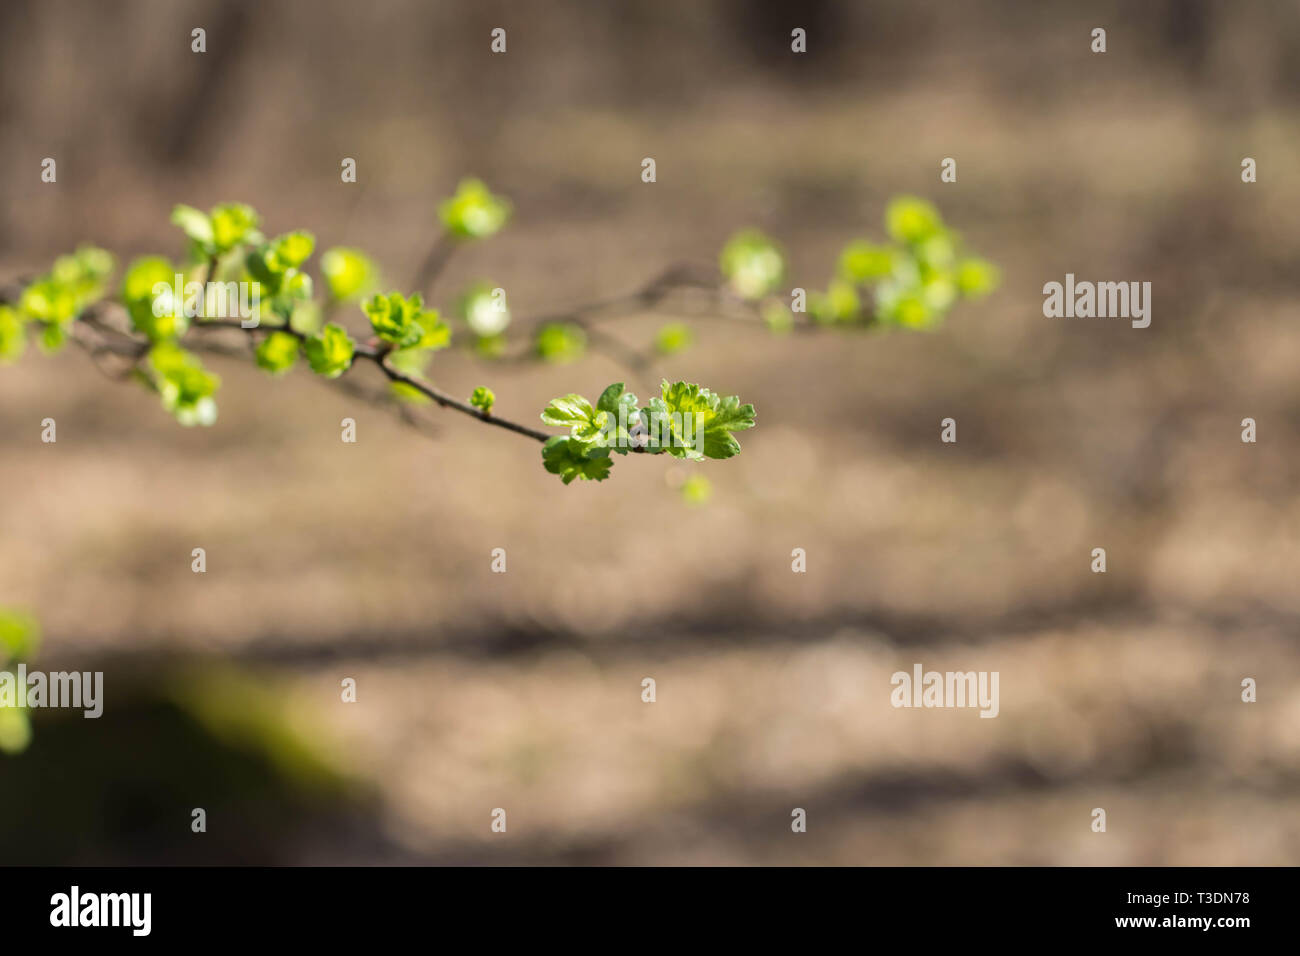 Young green fresh leaves on the branch of hawthorn tree - Stock Image